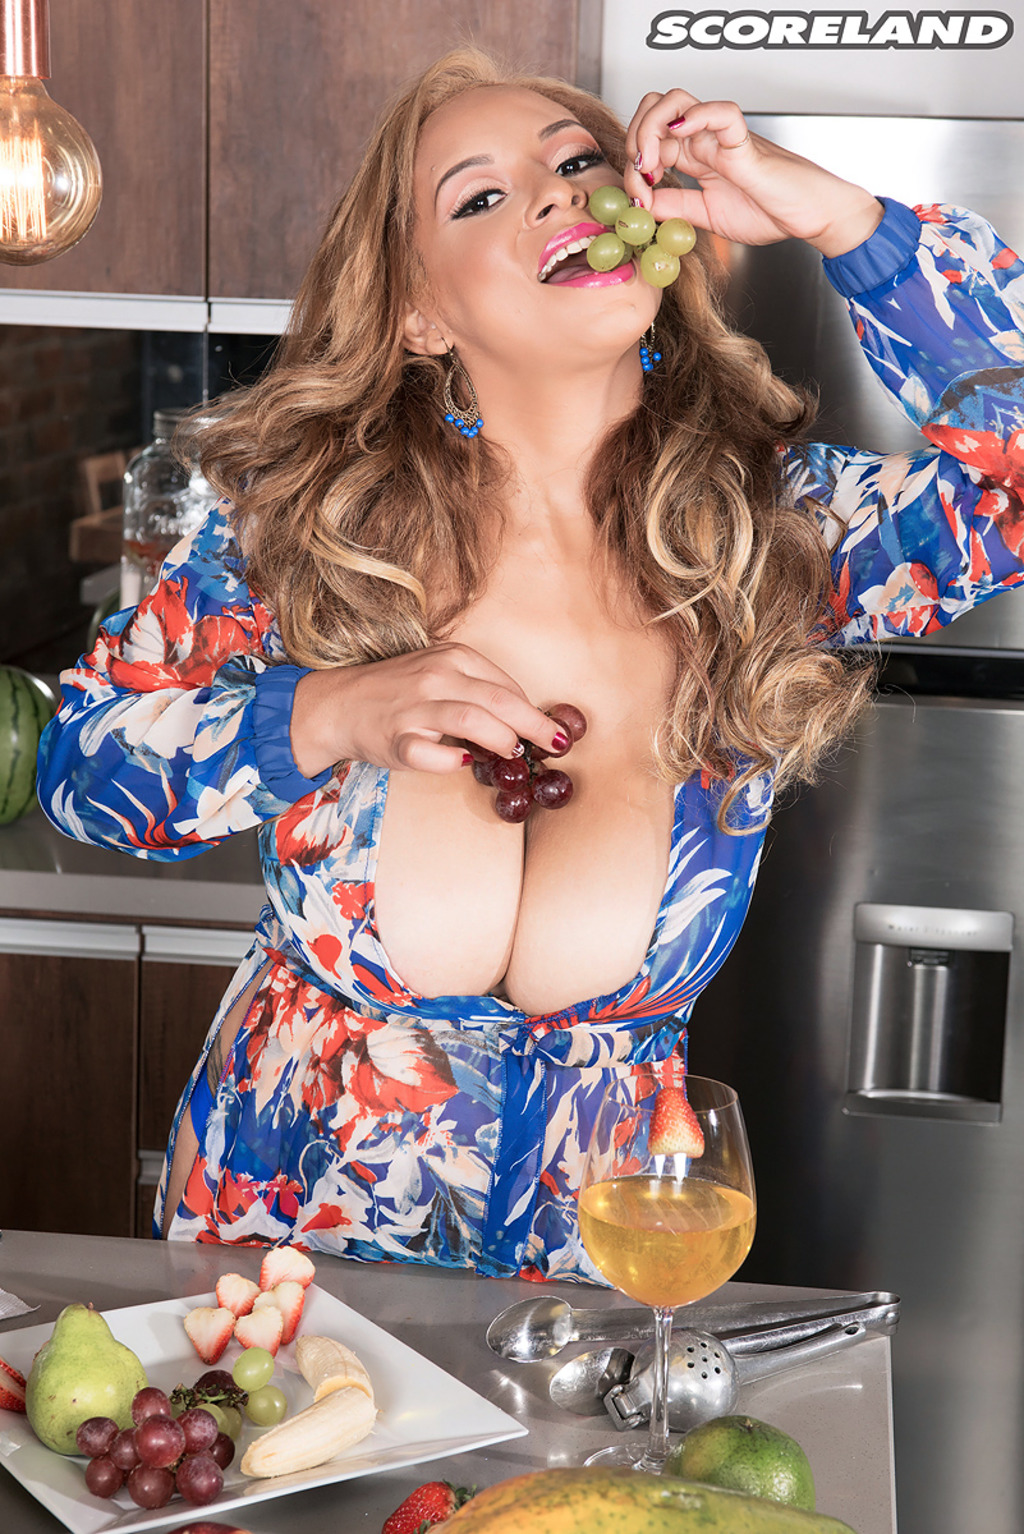 BODACIOUS MILF Shara Lopez has some ENORMOUS Boobs!